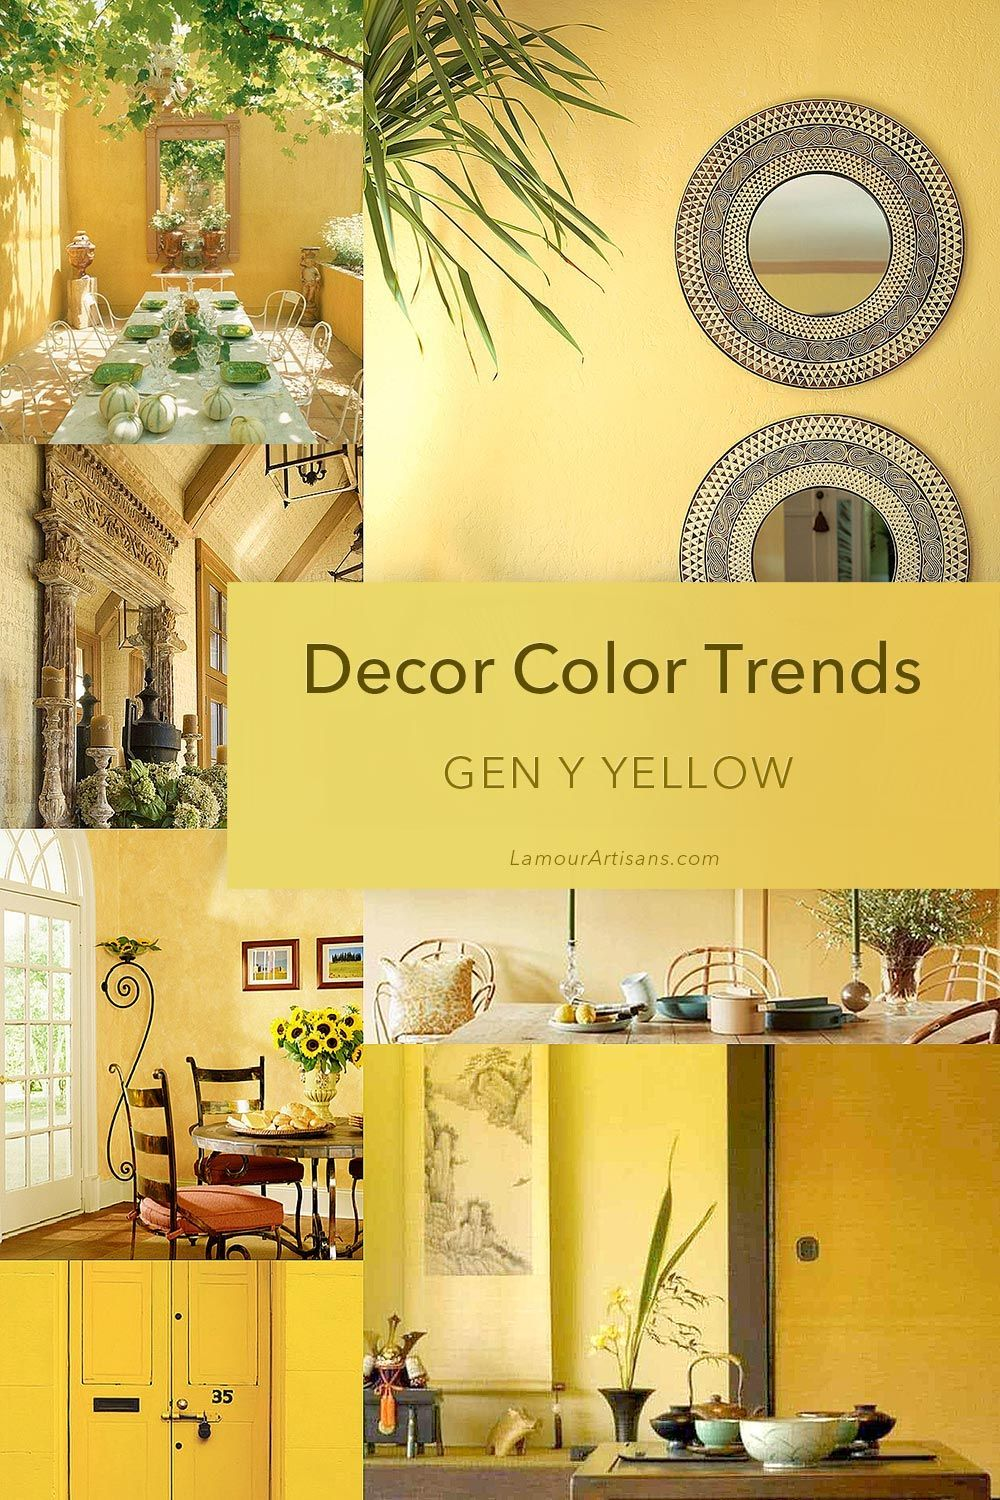 Interior Decor Color Trends For 2020 Yellow Wall Decor Yellow